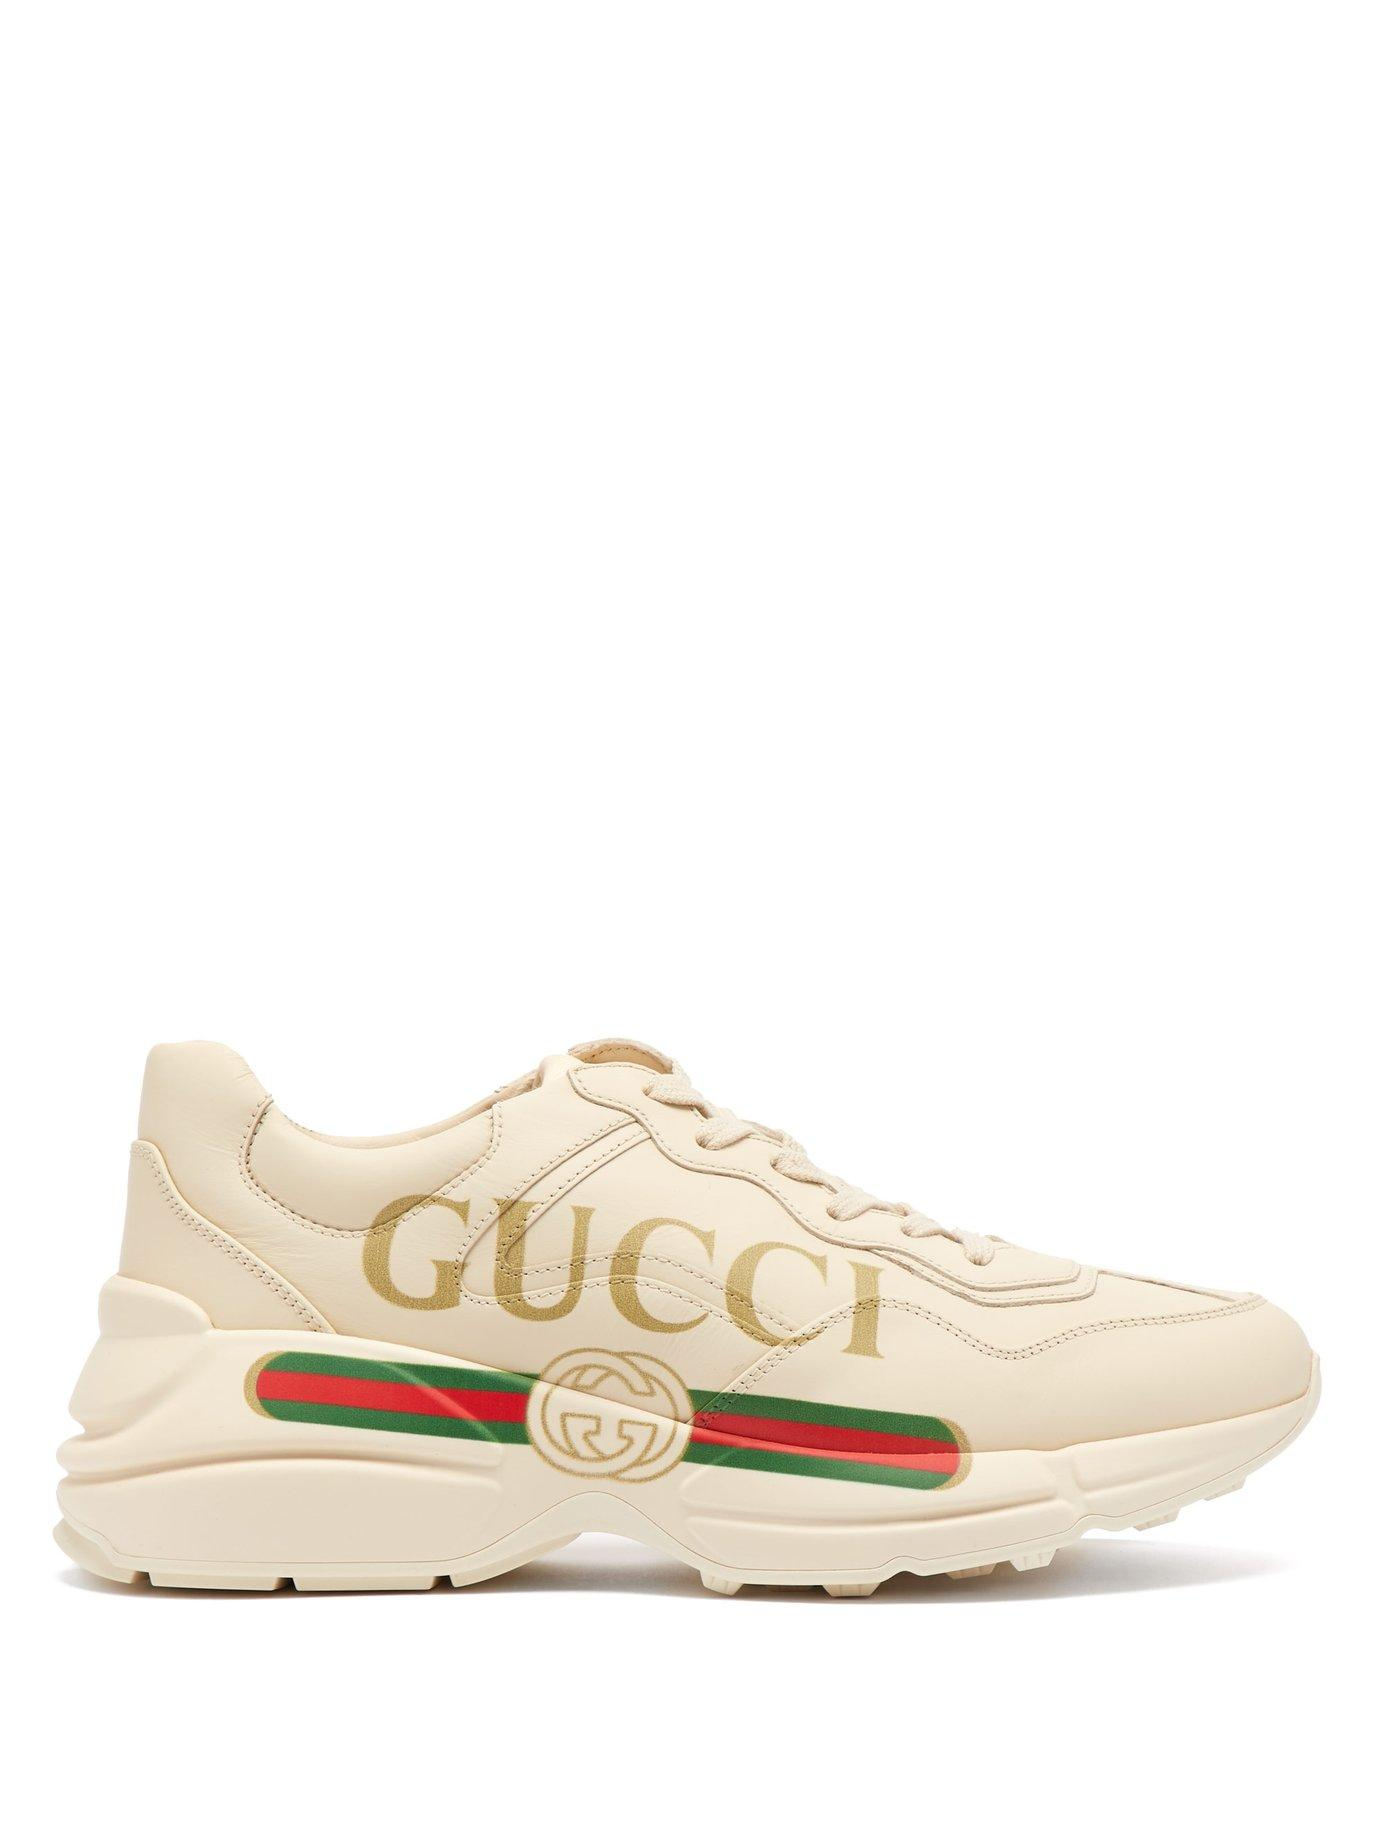 533e4d715 Gucci - Multicolor Rhyton Logo Leather Low Top Trainers - Lyst. View  fullscreen